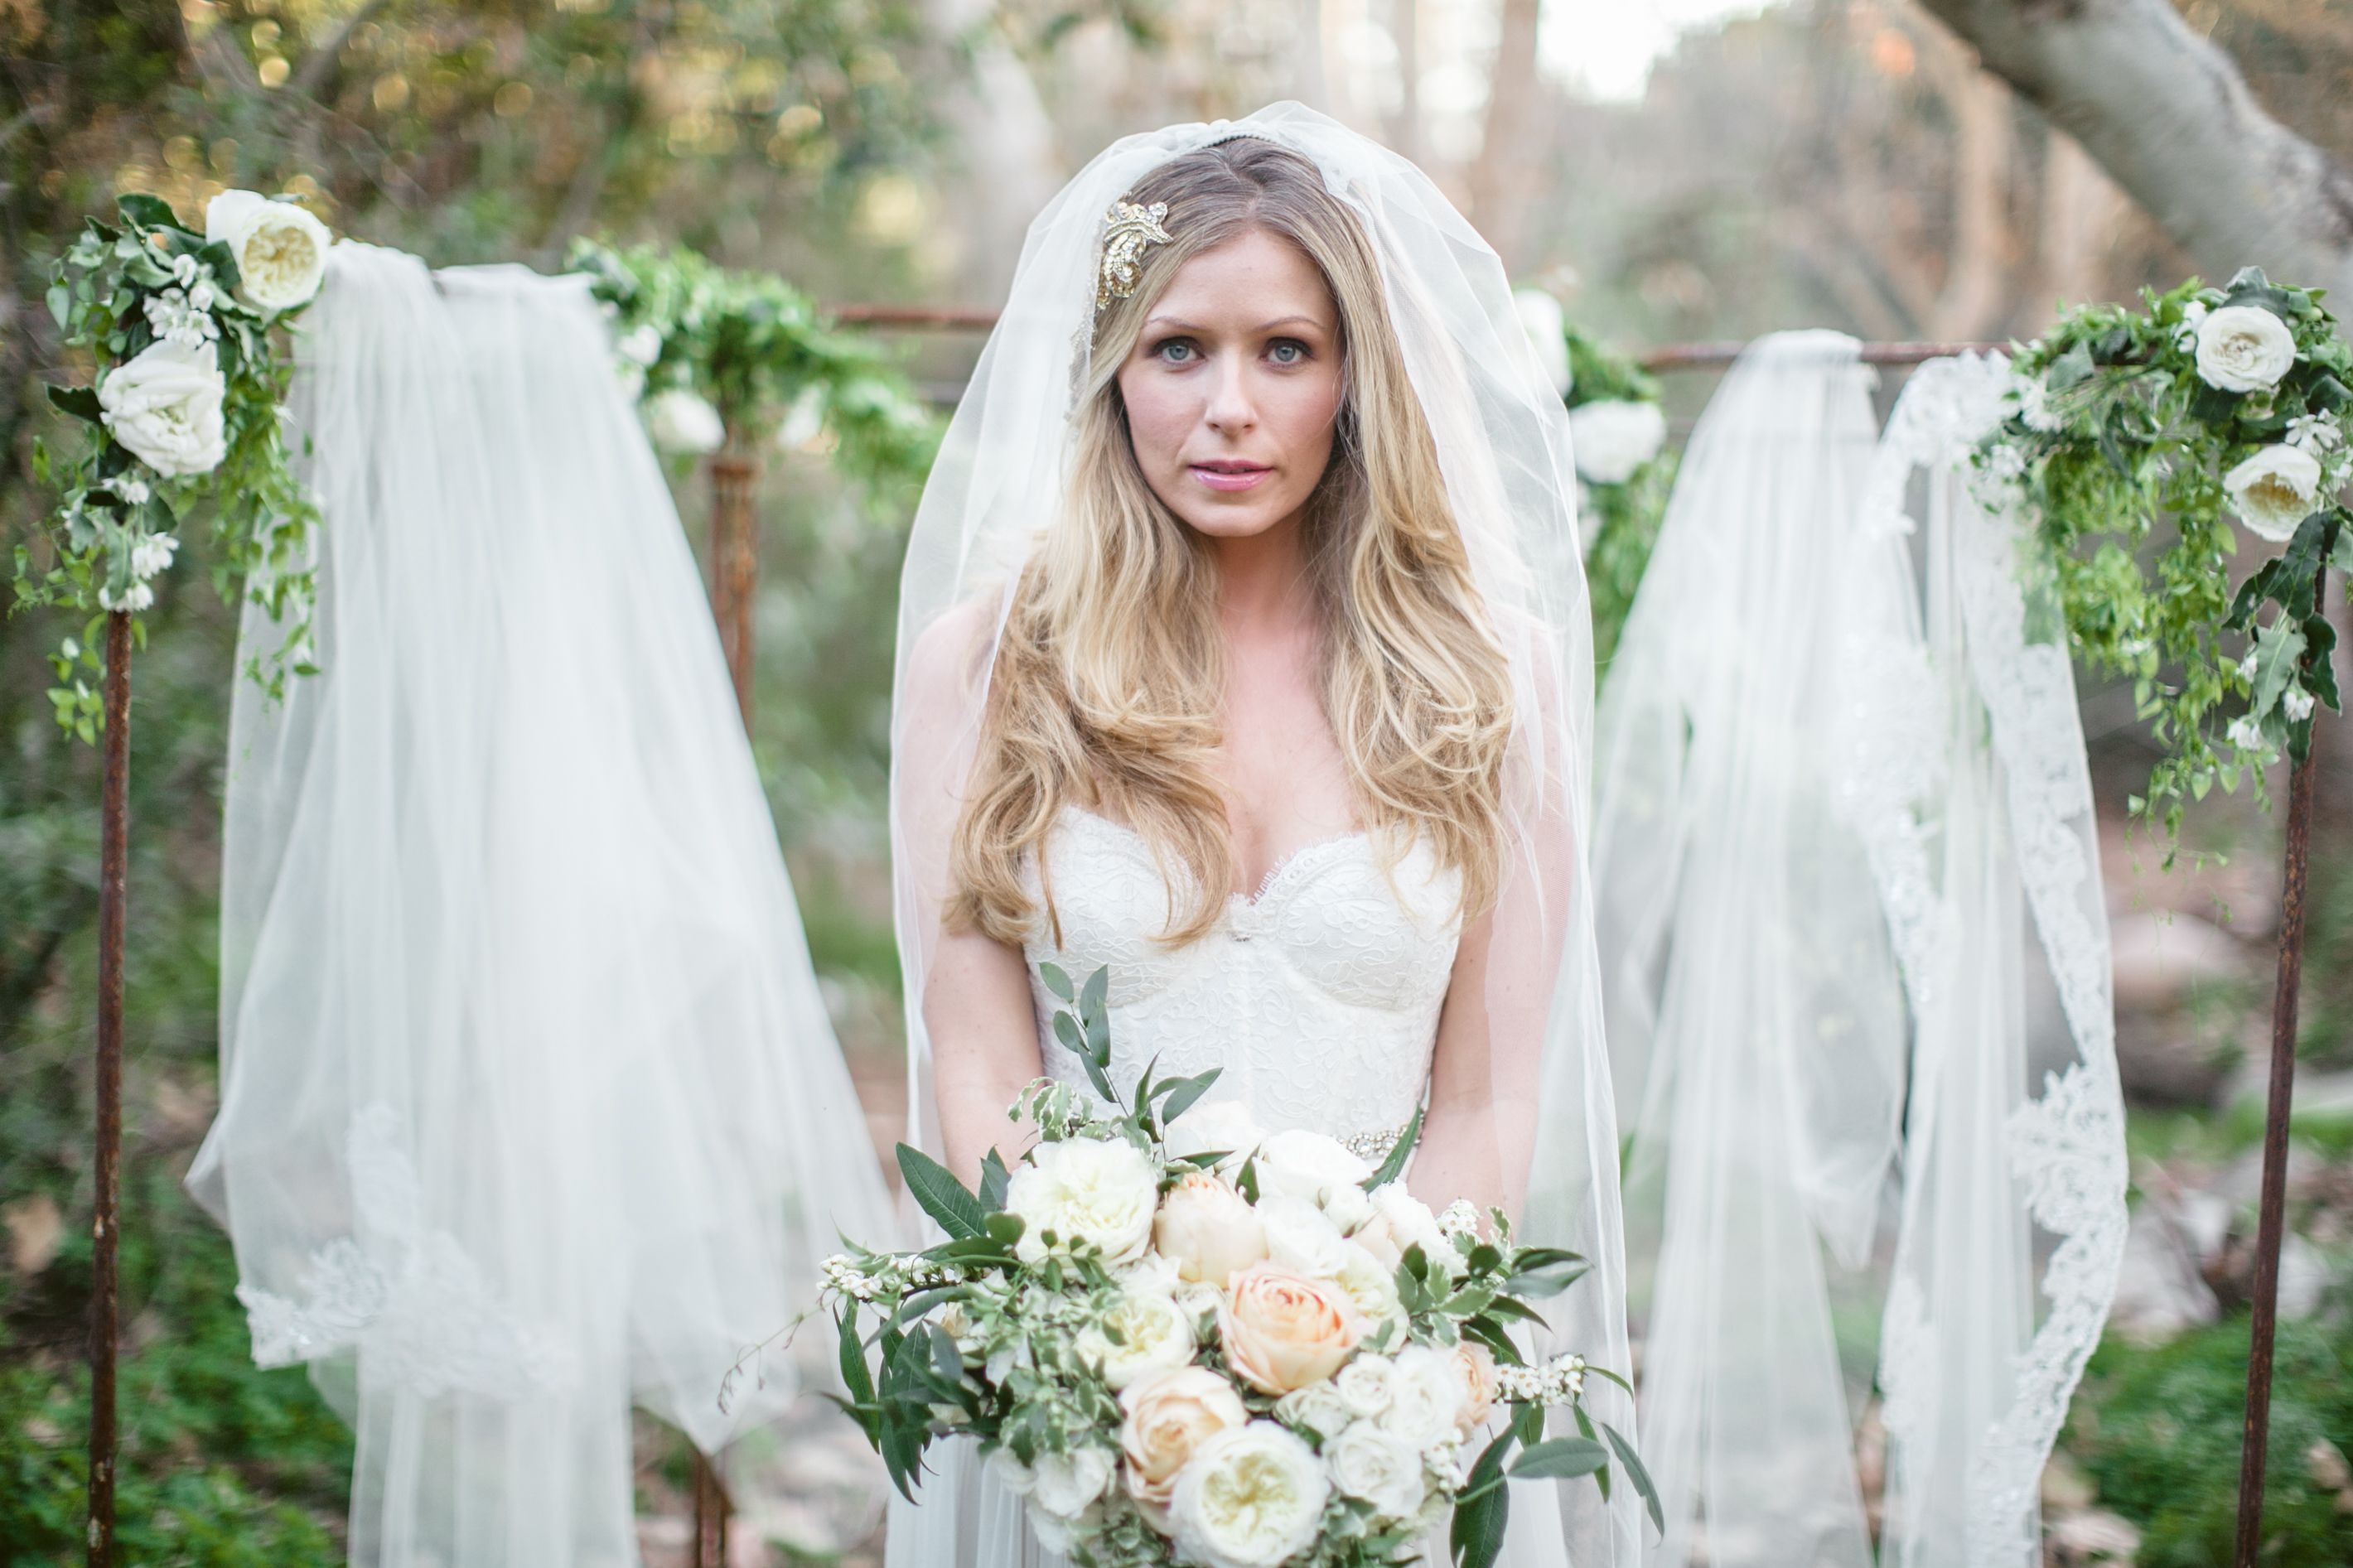 After The Day Wedding Photography Marketing Tips From Jasmine Star